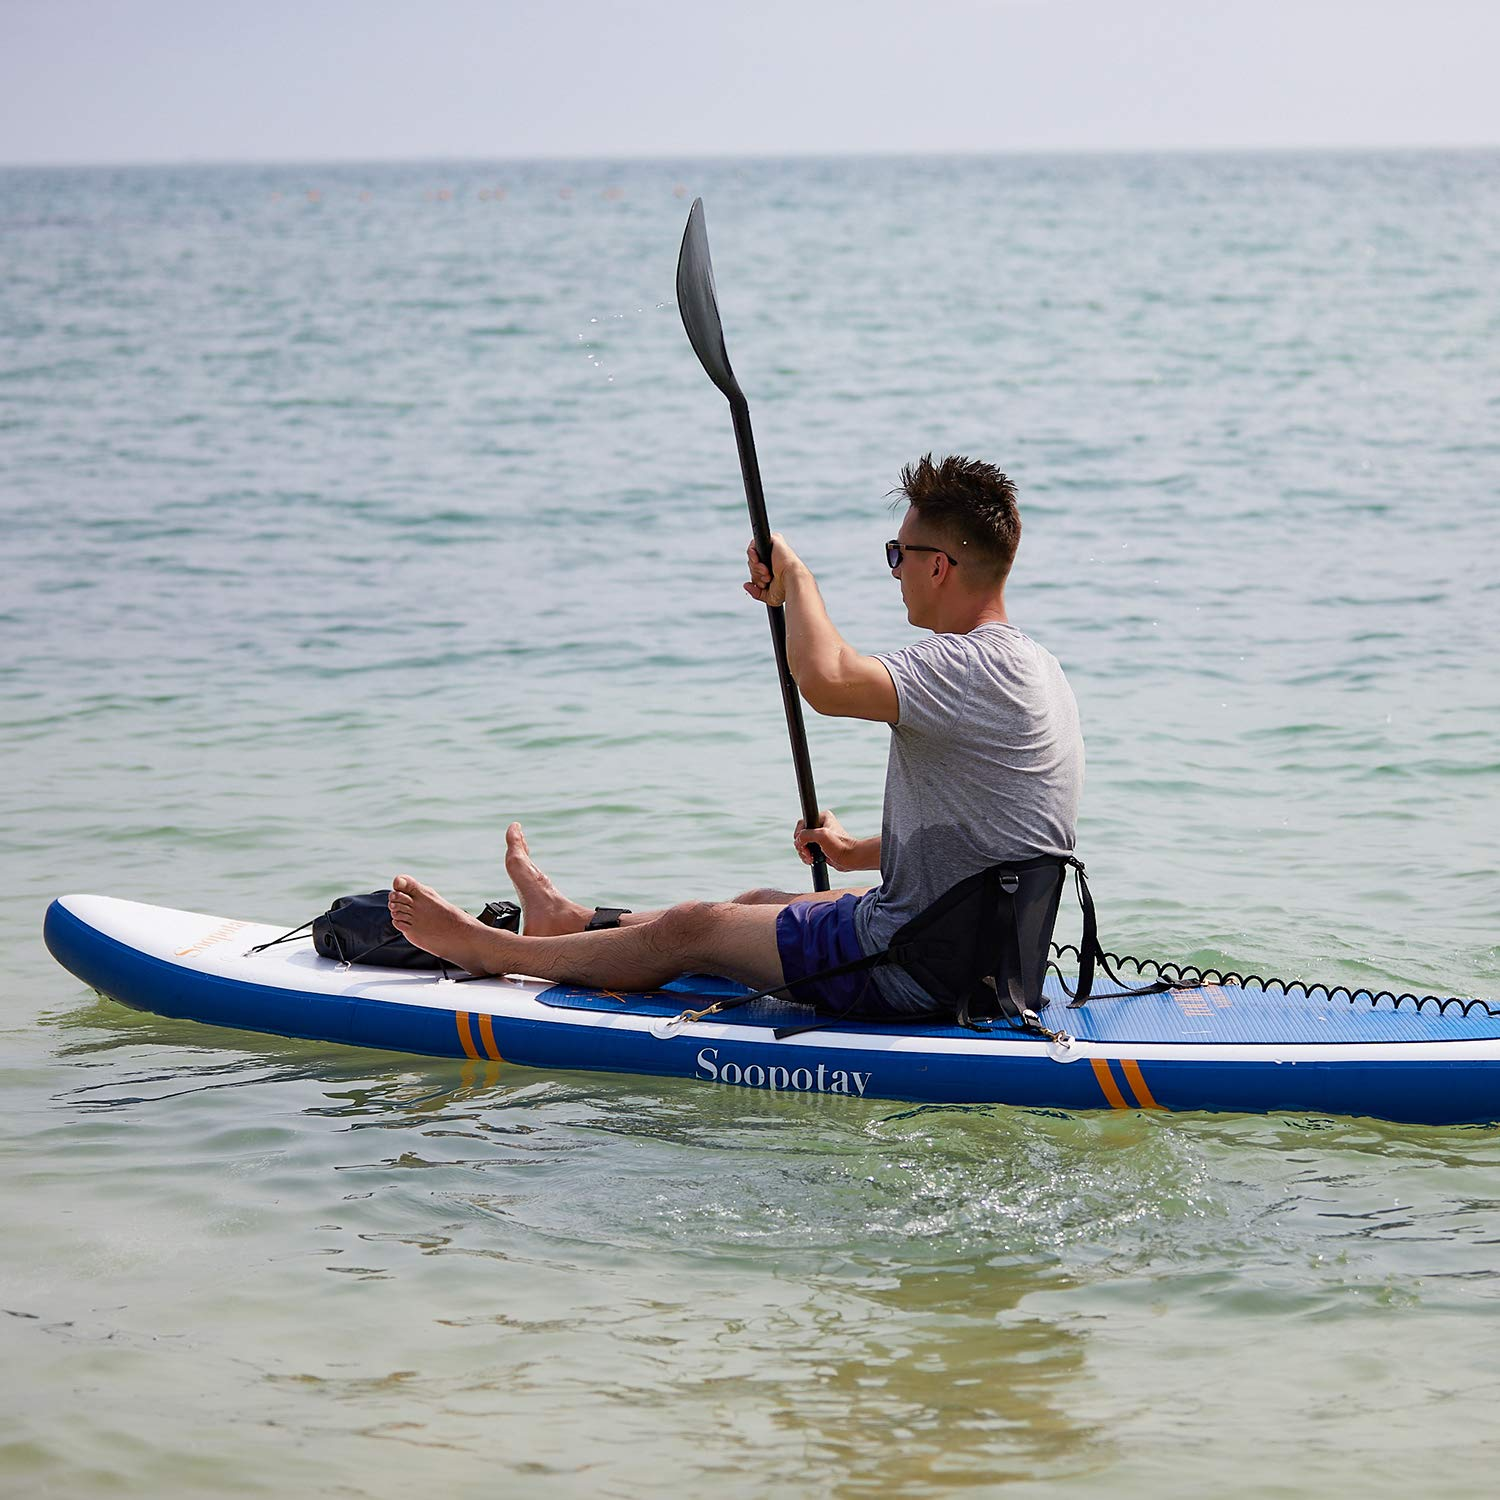 Inflatable SUP Board, Inflatable SUP Kayak, iSUP Package with All Accessories (Touring-Navy Blue-11'6'' x 32'' x 6'') by Soopotay (Image #6)